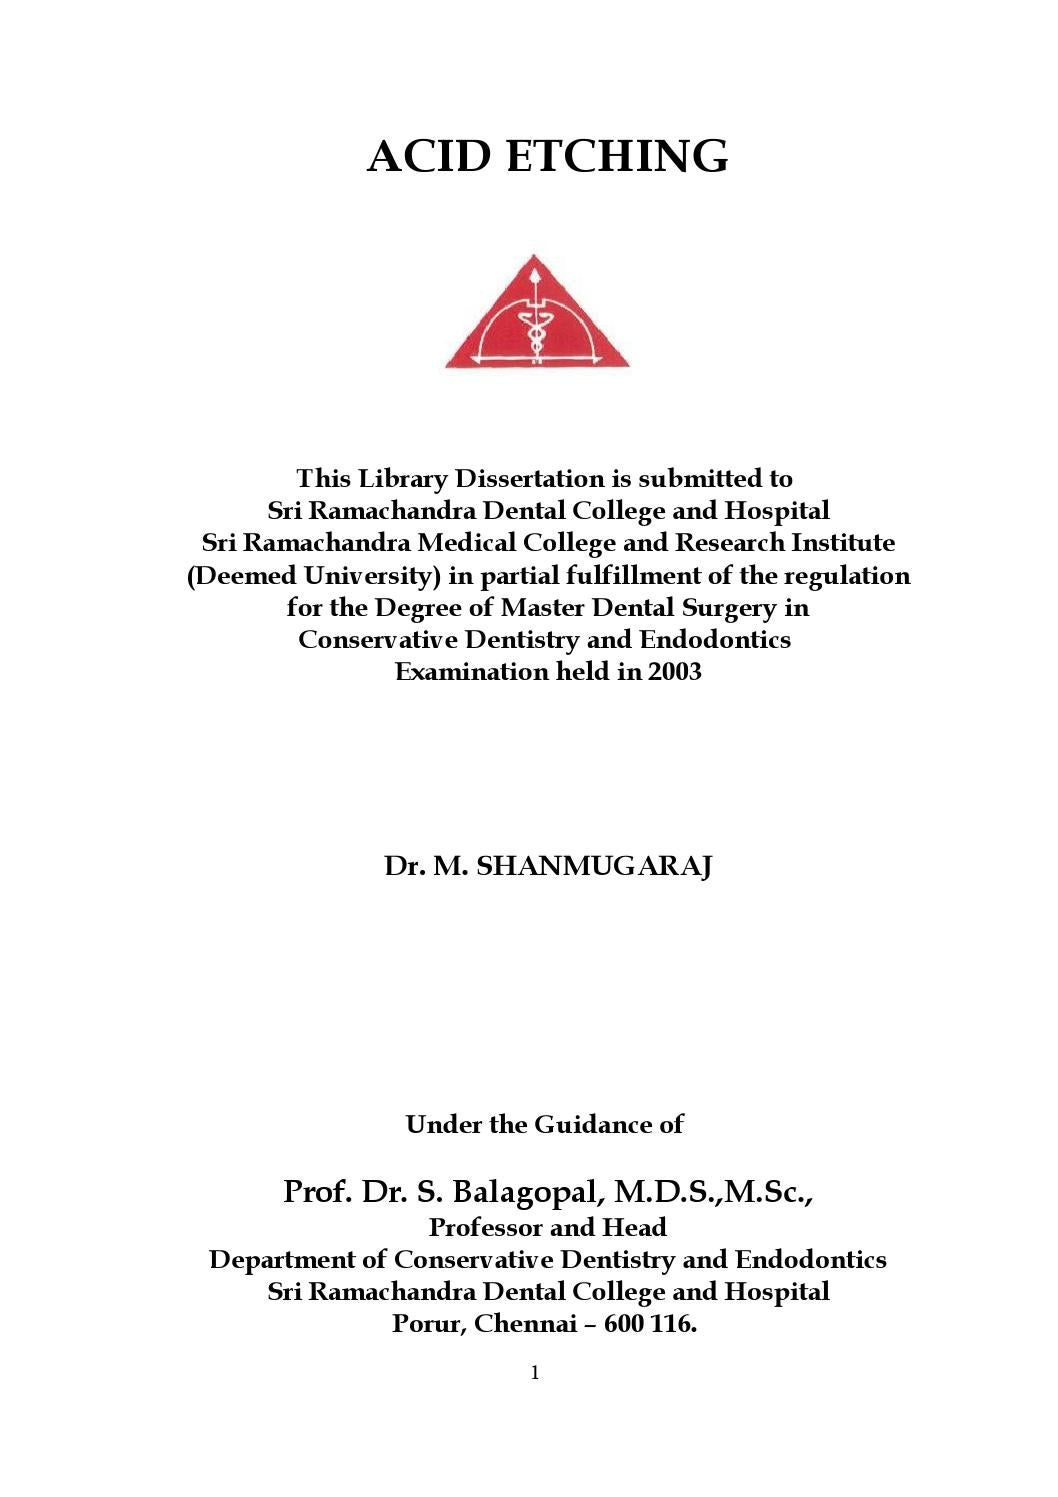 Library dissertation conservative dentistry biodegradation of phenol thesis